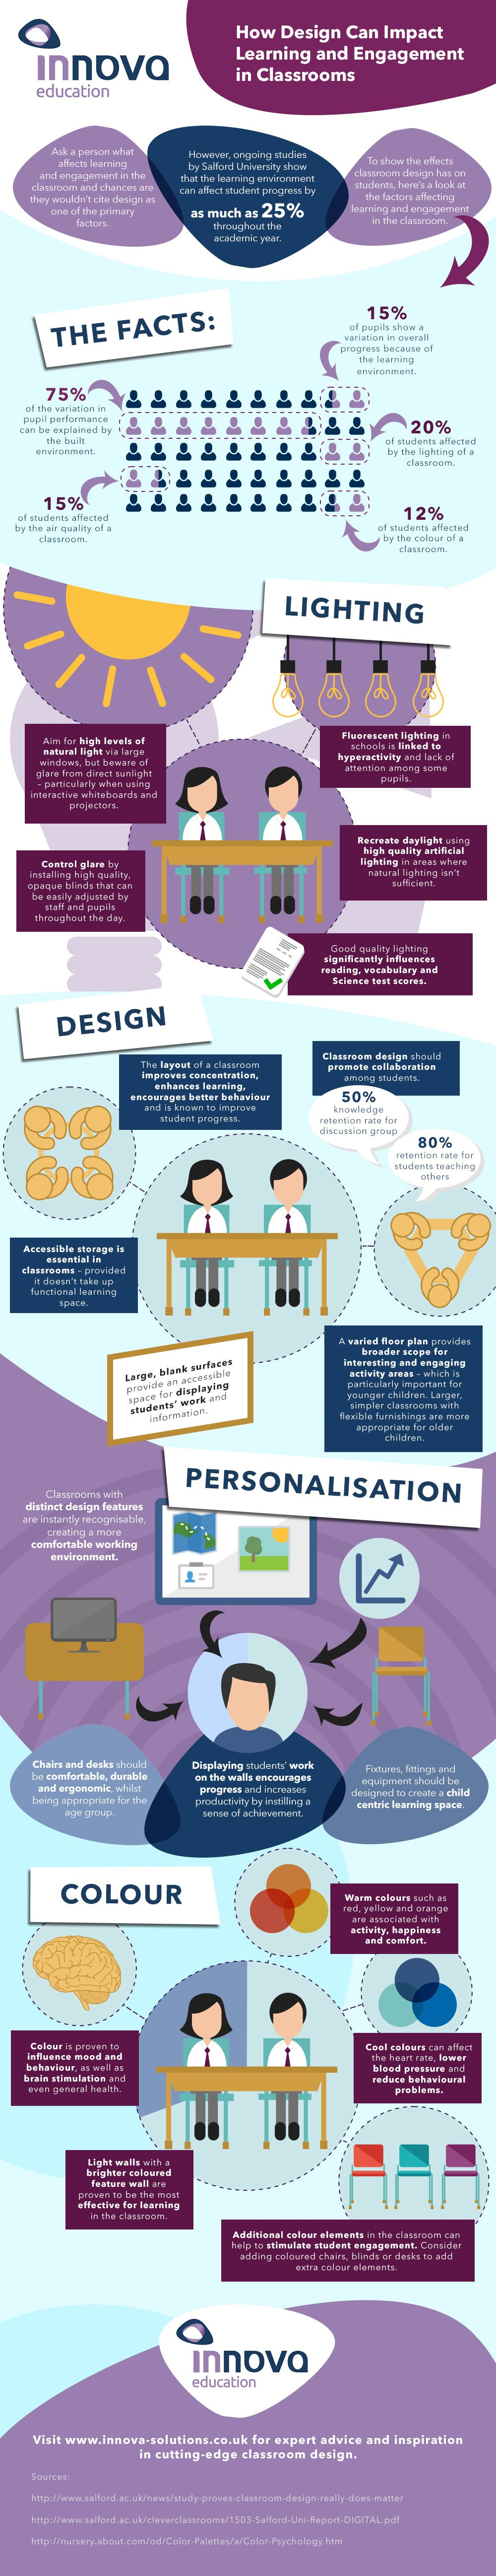 E learning poster designs - How Classroom Design Impacts Learning And Engagement Infographic